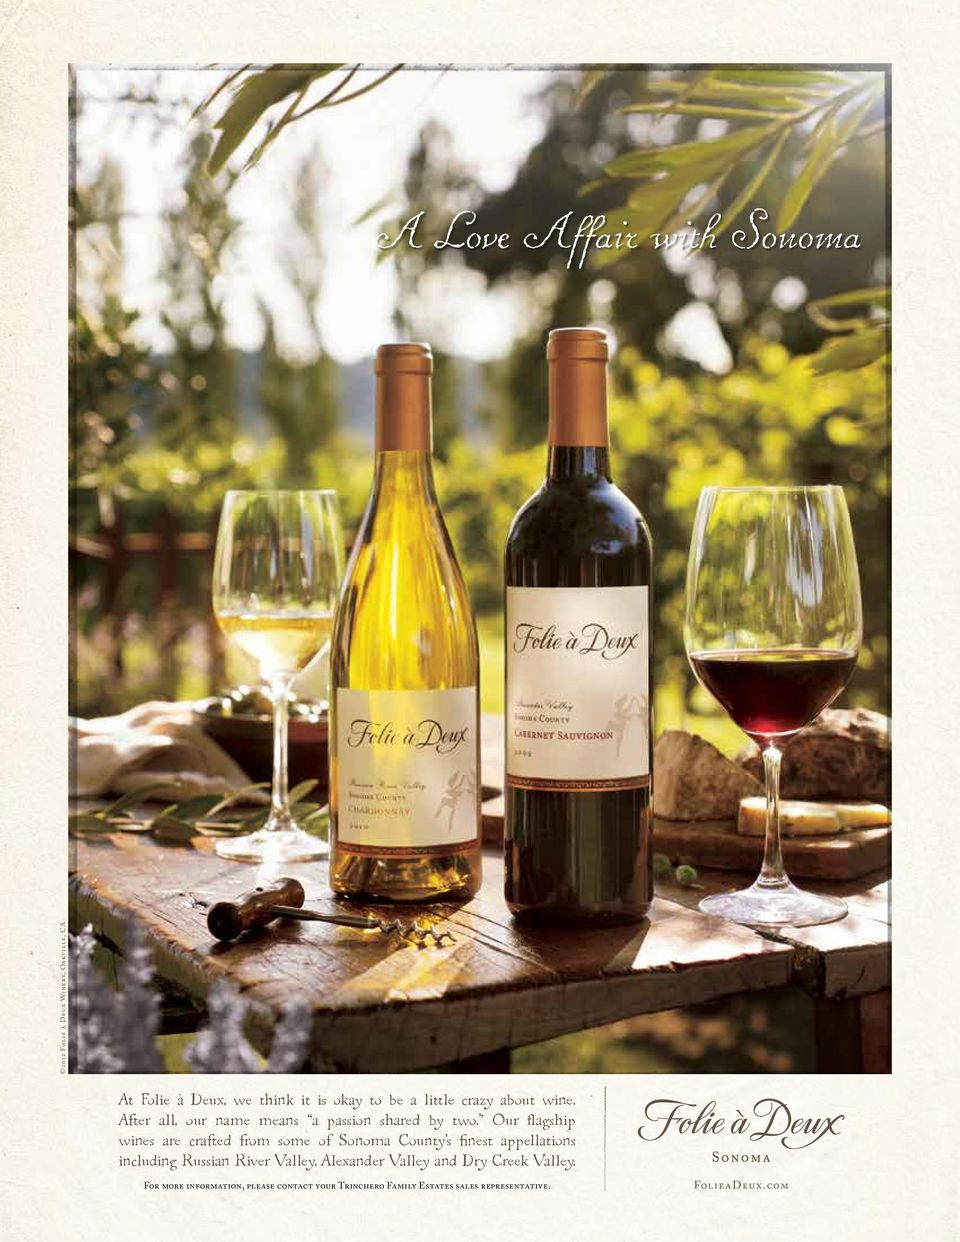 Our flagship wines are crafted from some of Sonoma County s finest appellations including Russian River